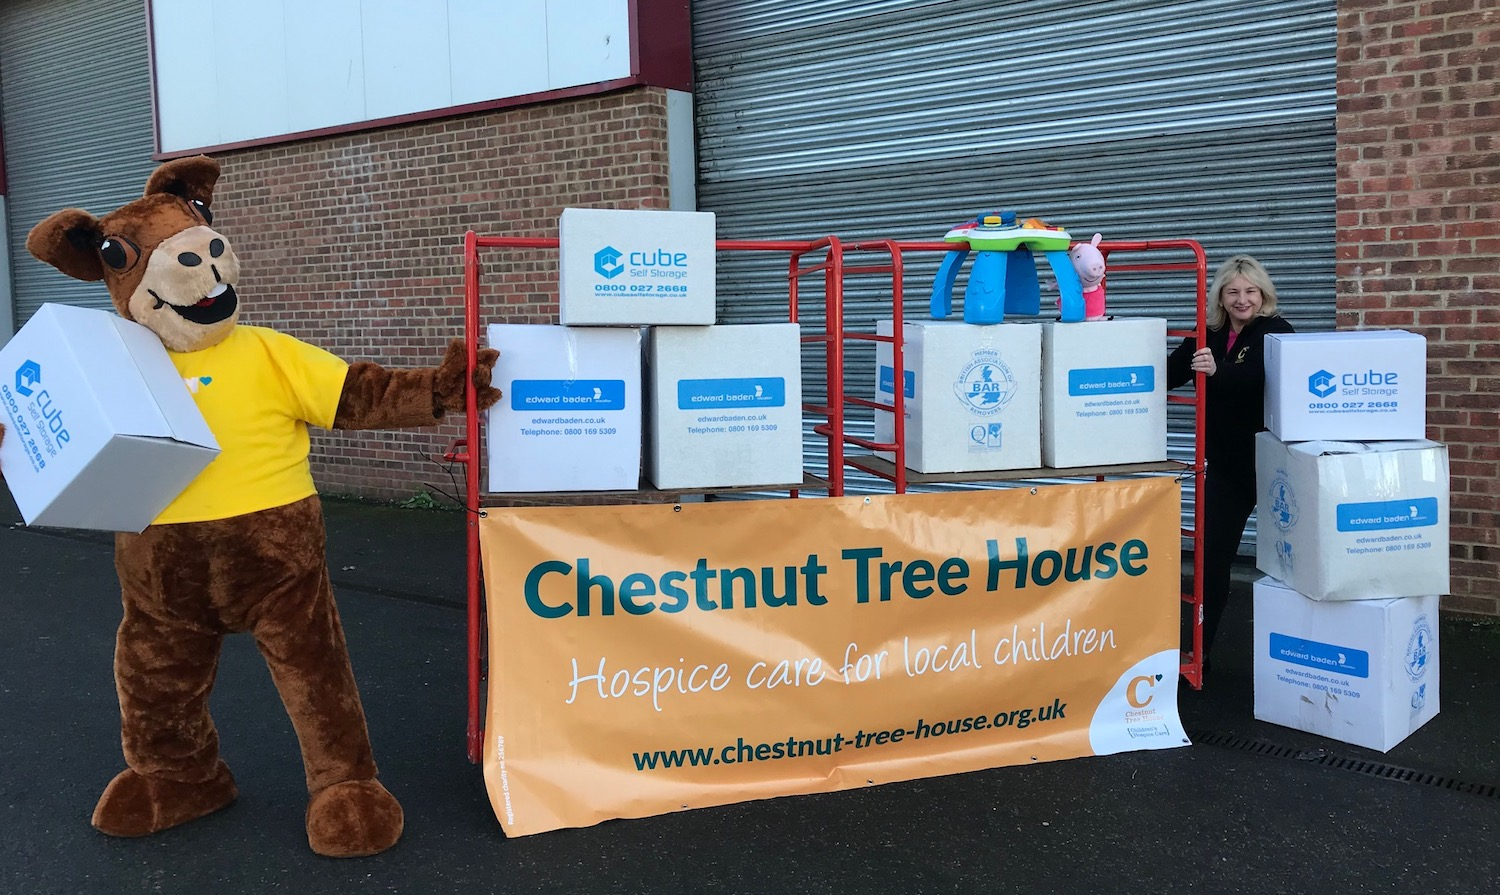 cube storage collects toys for chestnut tree house charity